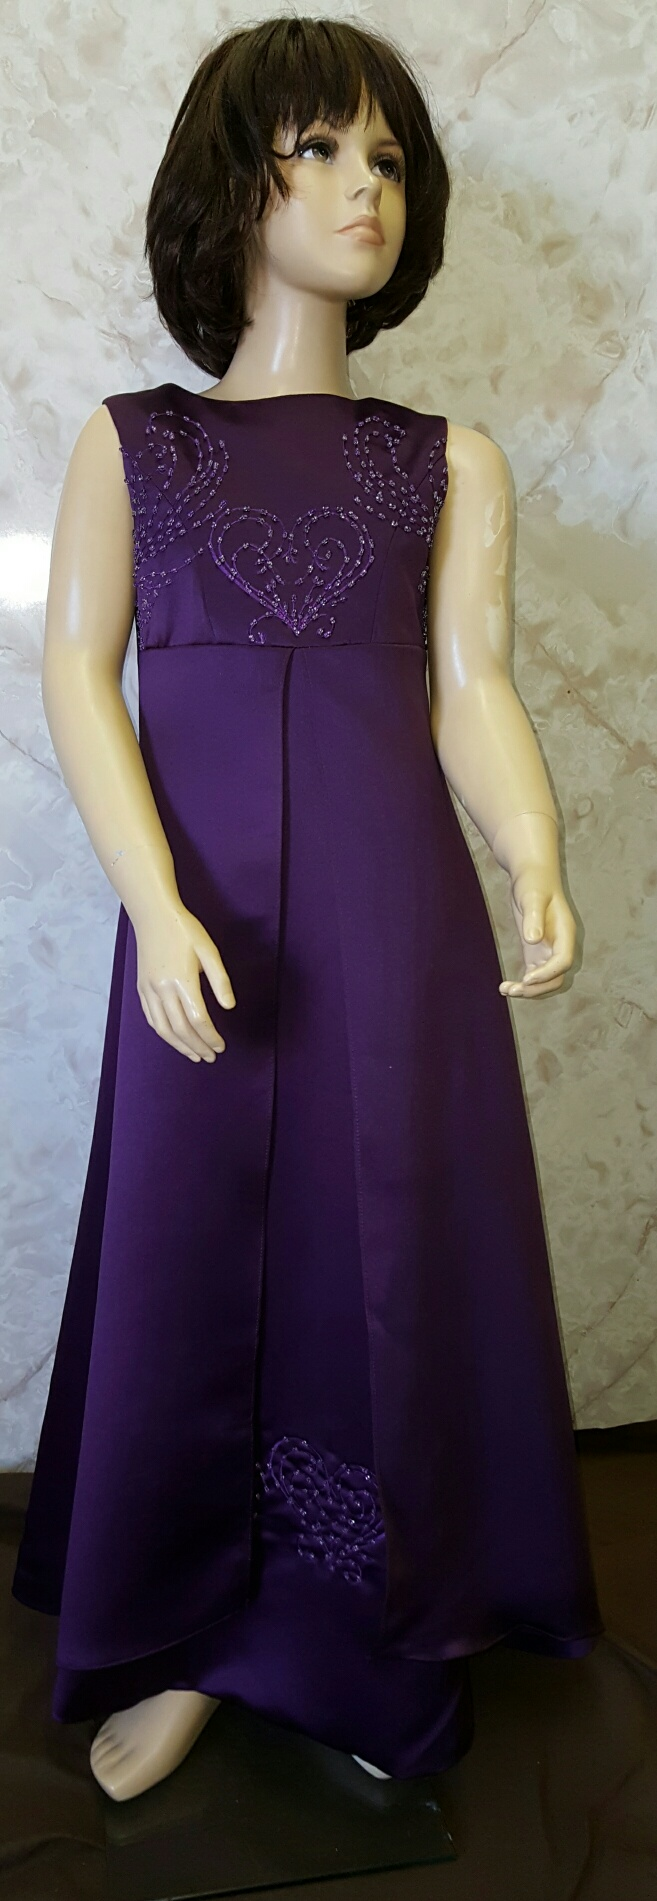 Purple bridesmaid dresses purple flower girl dresses short purple bridesmaid dresses ombrellifo Images